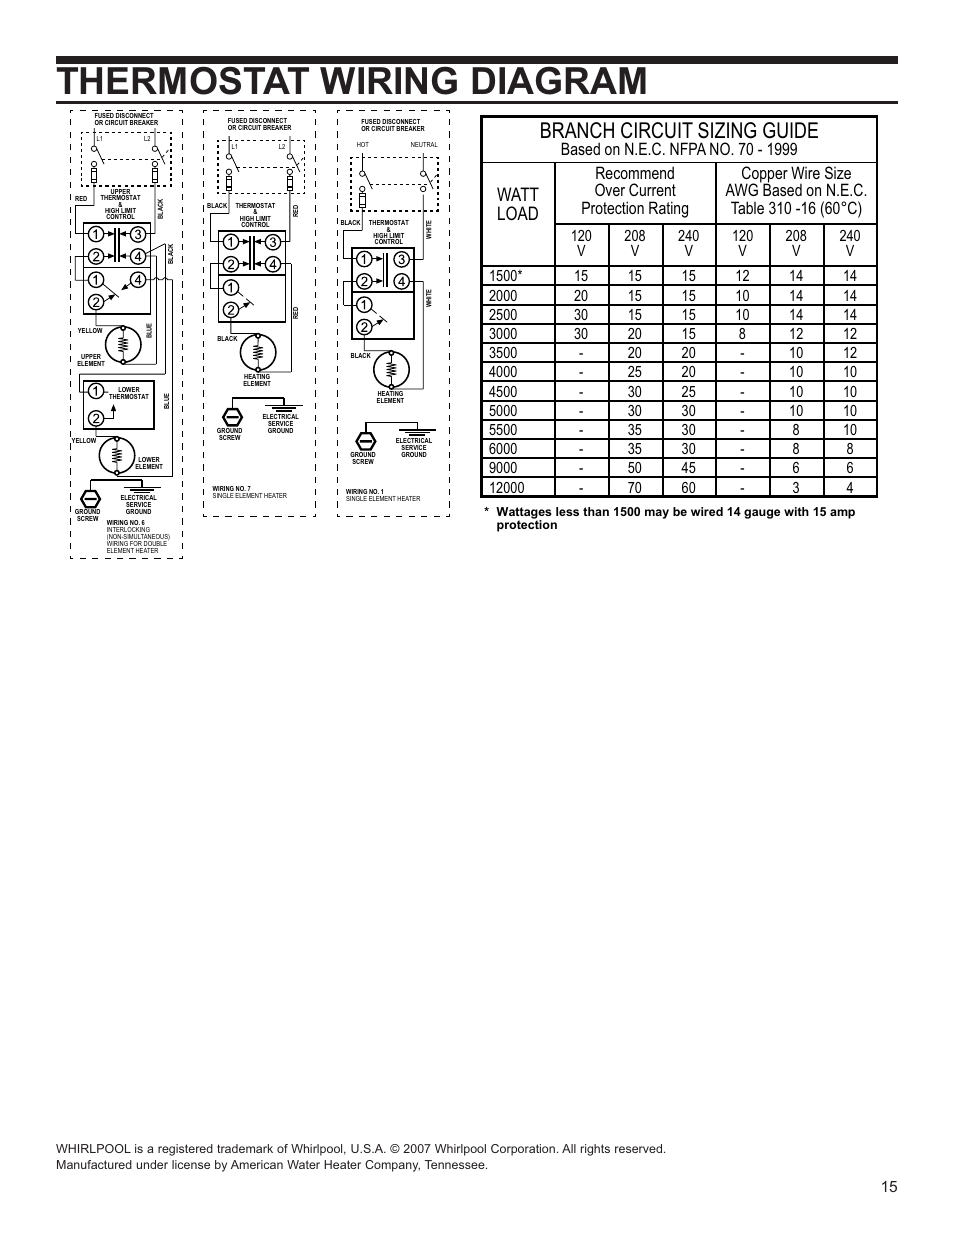 thermostat wiring diagram  branch circuit sizing guide whirlpool electric water heater thermostat wiring diagram whirlpool electric water heater thermostat wiring diagram whirlpool electric water heater thermostat wiring diagram whirlpool electric water heater thermostat wiring diagram